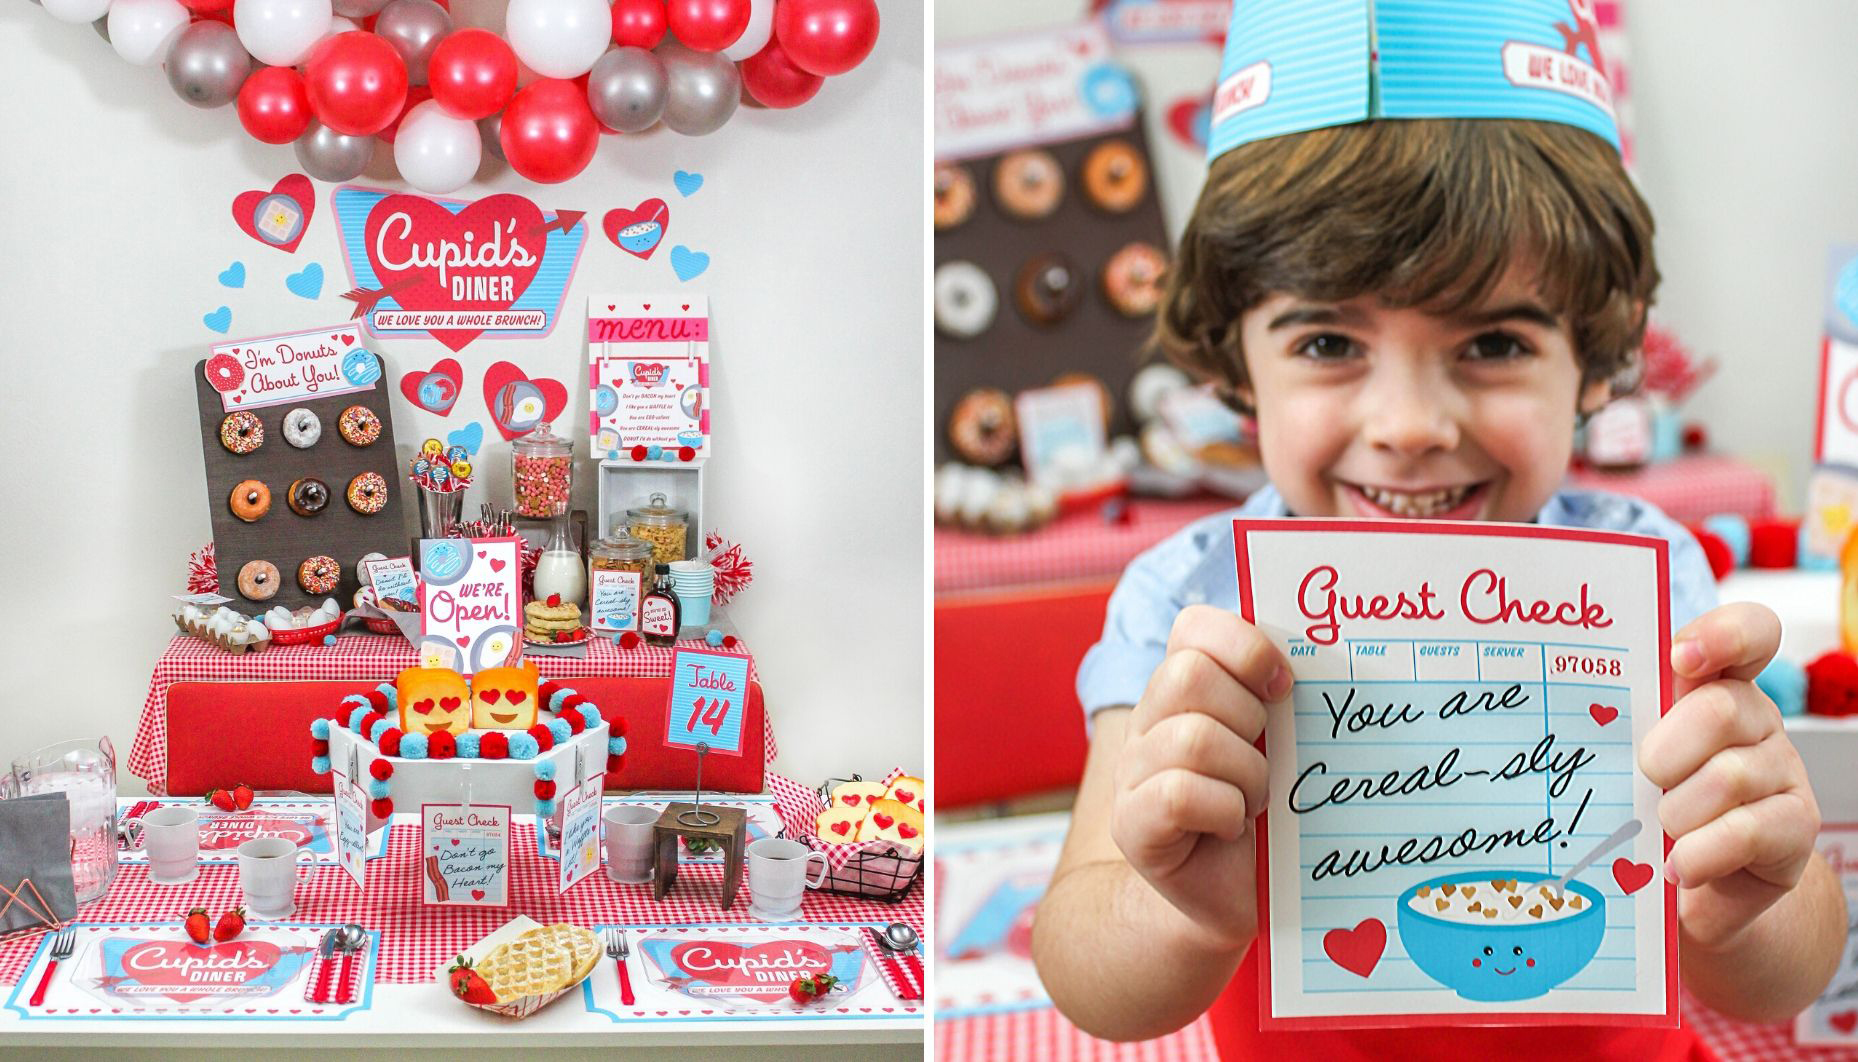 Cupid's Diner Valentine's Day Family Brunch Party, Valentine's Day family brunch, Valentine's Day, retro diner, brunch, we love you a whole brunch, kids valentines, party printables, Cupid's Diner, I like you a waffle lot, you are egg-cellent, Don't go bacon my heart, Just Add Confetti, Oriental Trading, Fun365, I'm donuts about you, Valentine's Day party, free printables, puns, Valentine's Day puns, guest check, retro diner order stand DIY, retro menu board DIY